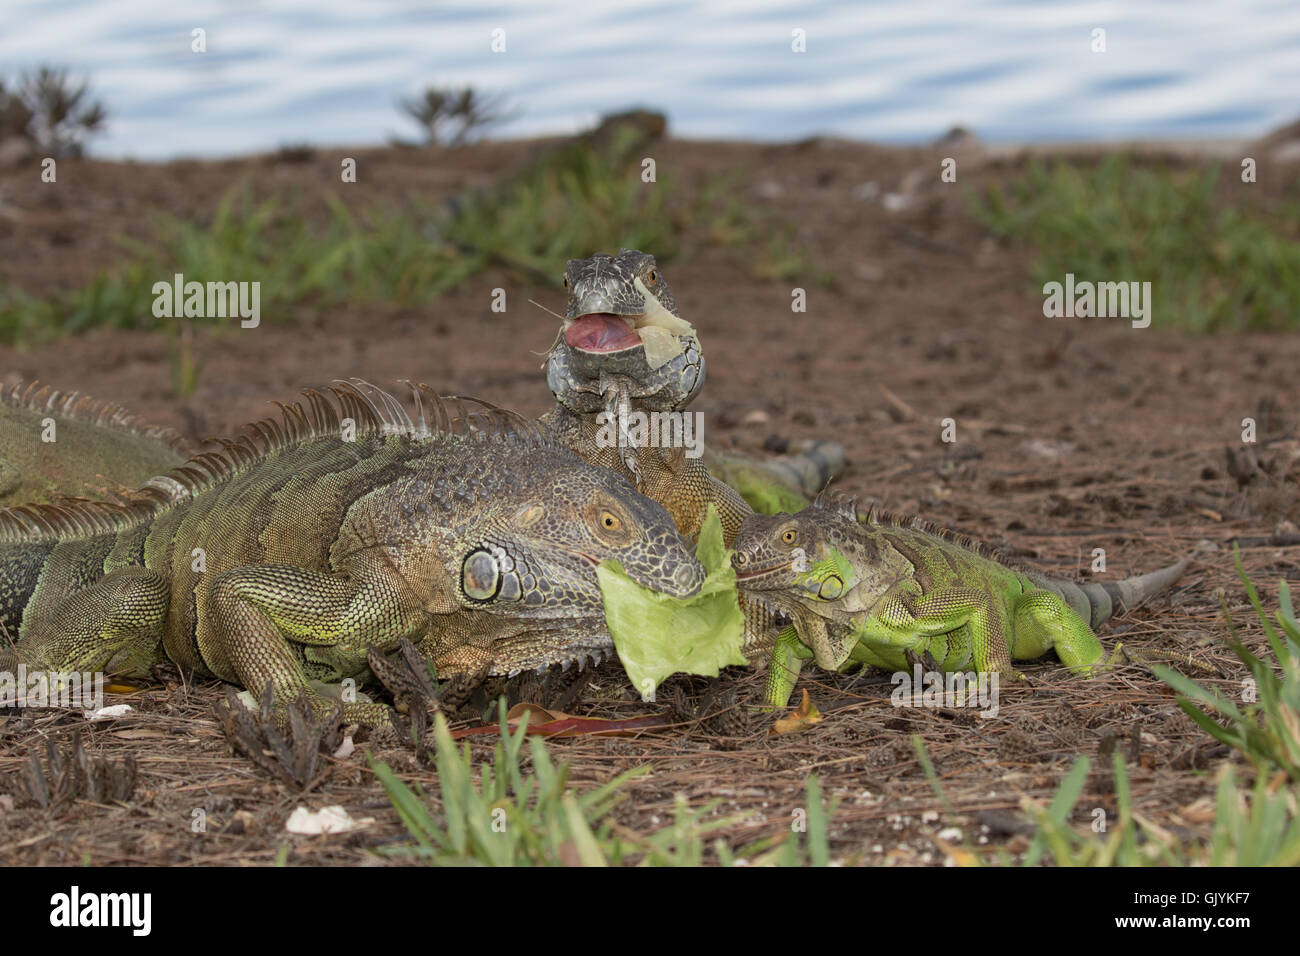 Tongue Spines Stock Photos & Tongue Spines Stock Images - Alamy